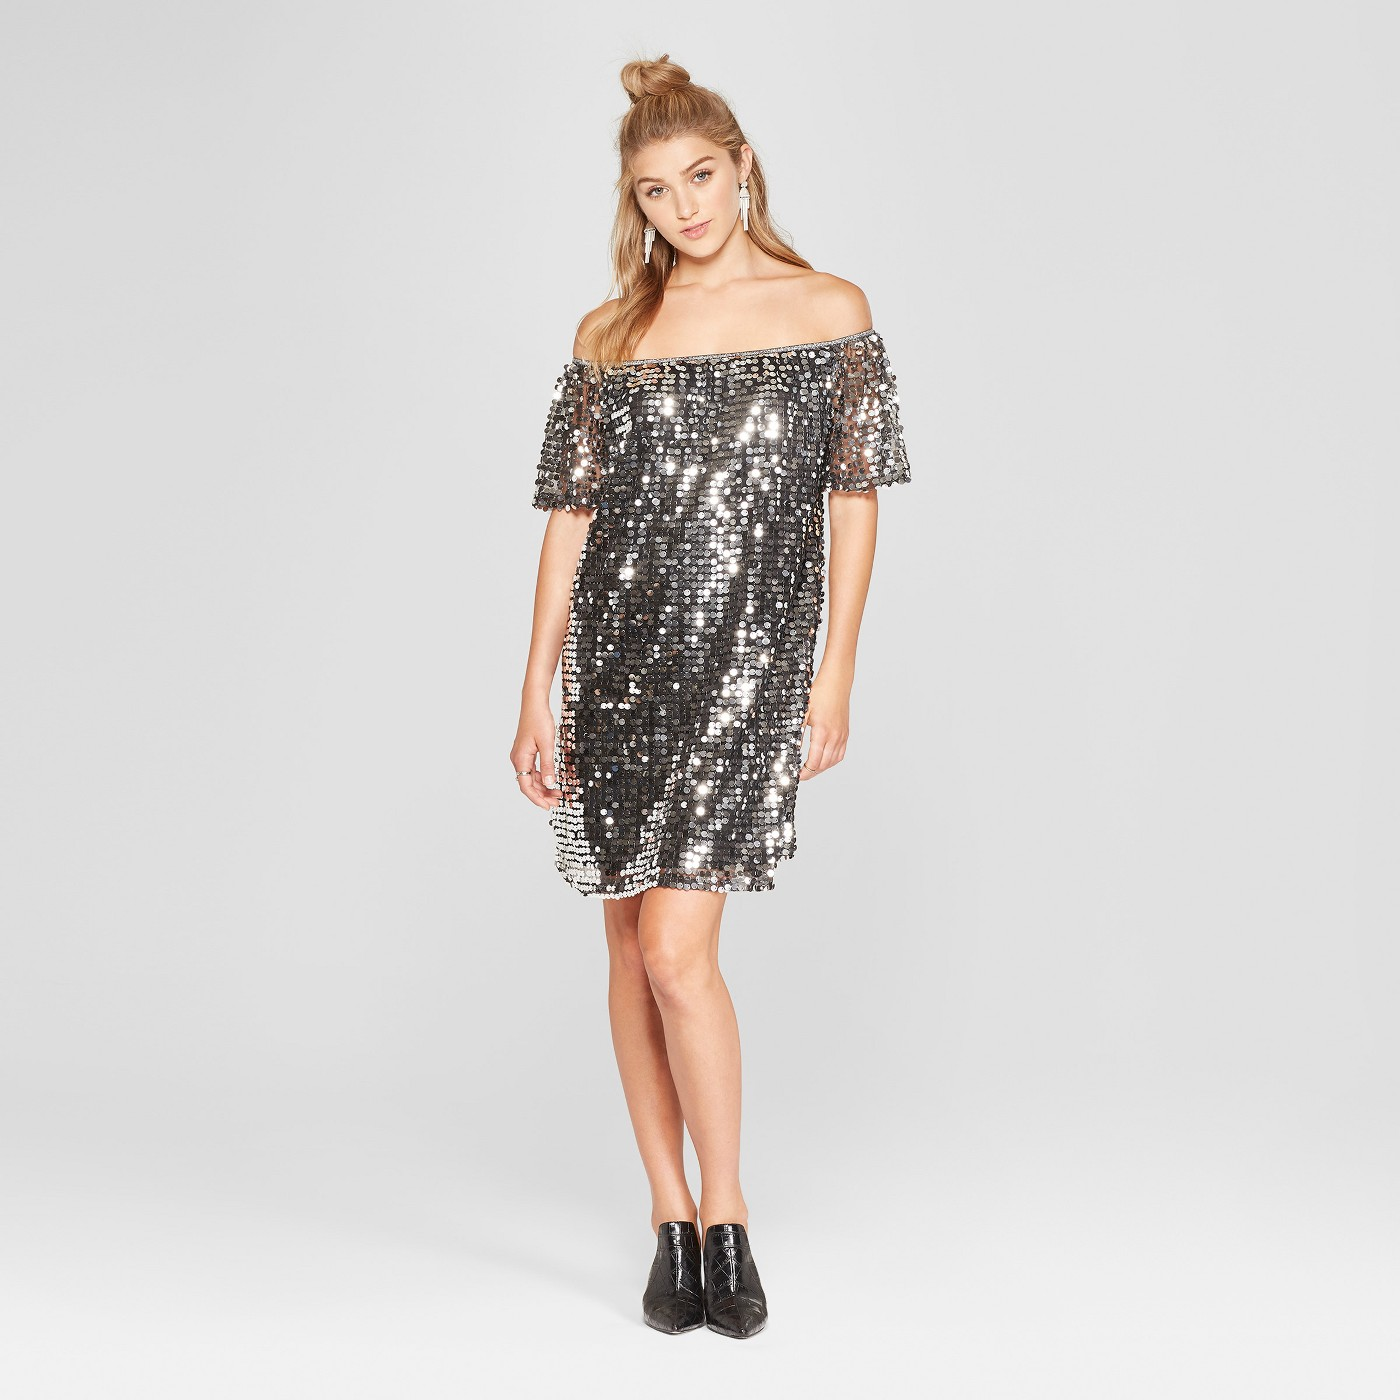 Women's Short Sleeve Off the Shoulder Sequin Dress - Xhilaration™ - image 1 of 2